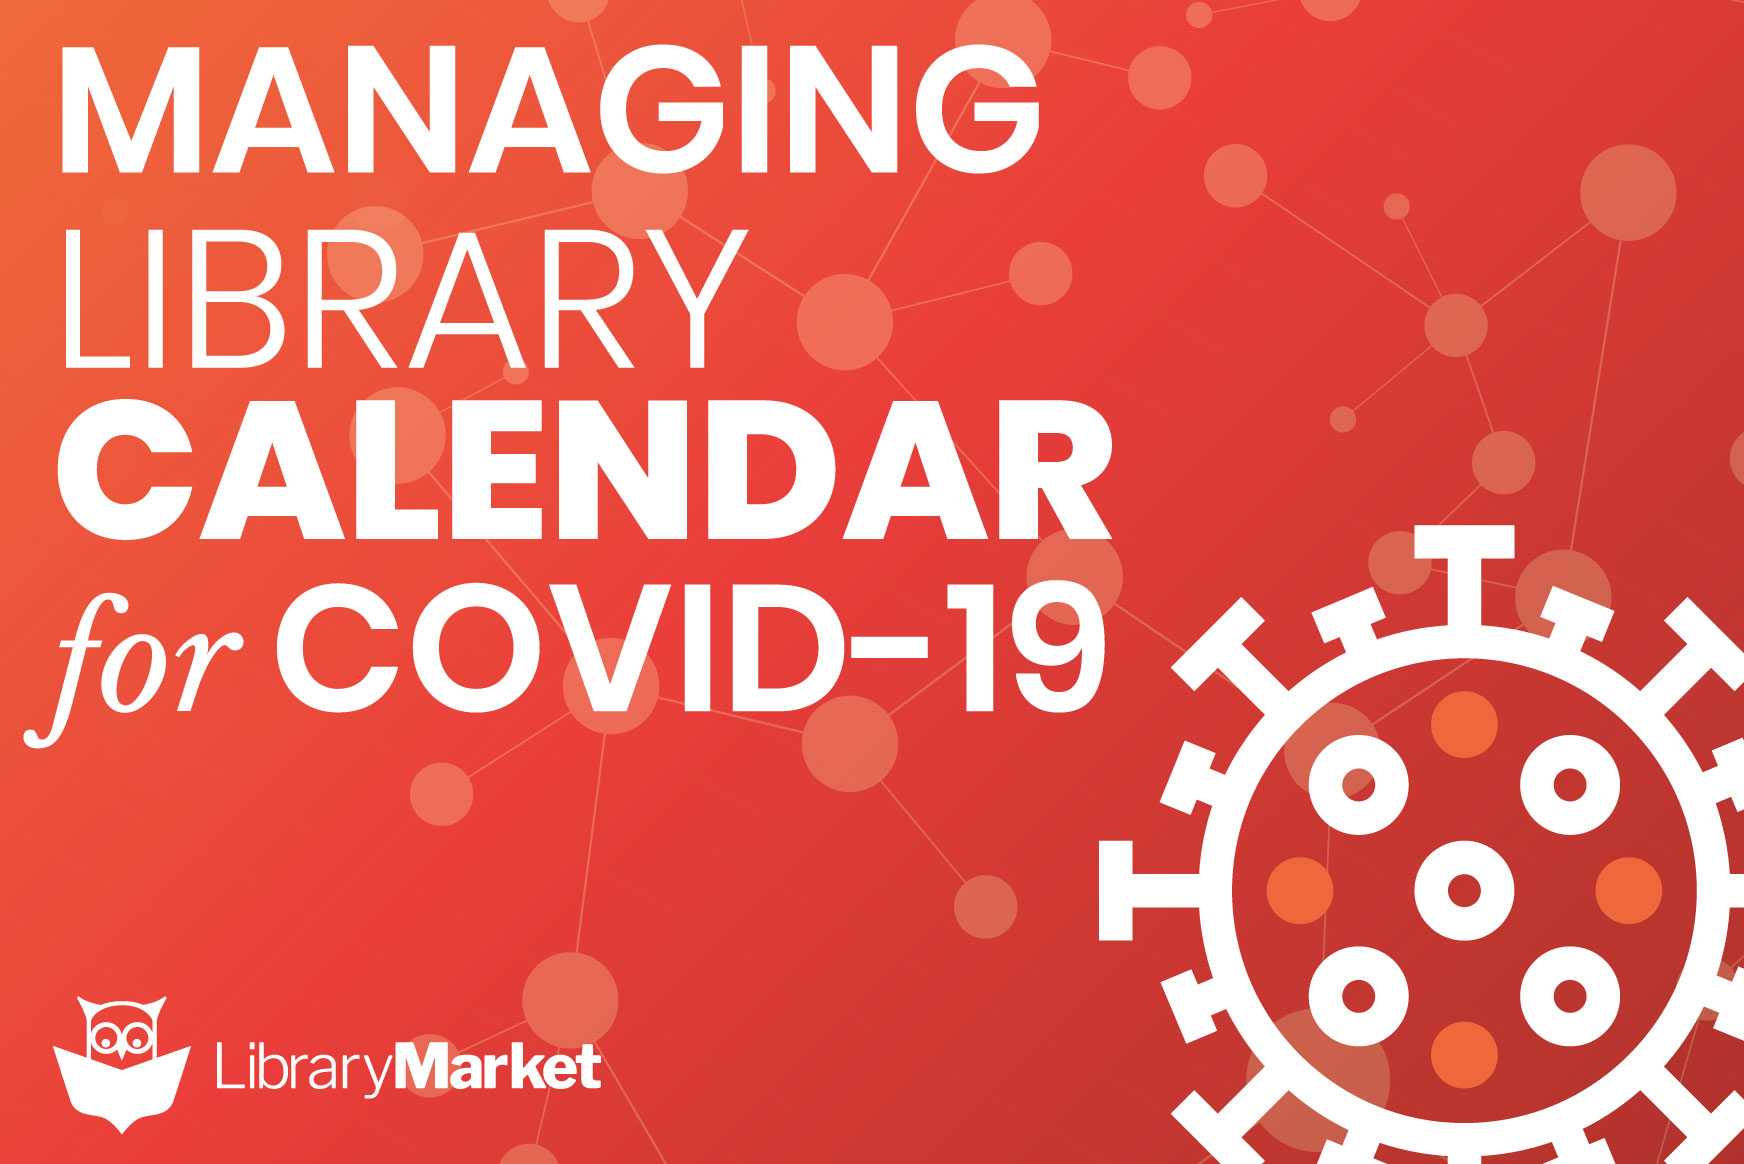 Managing LibraryCalendar for COVID-19